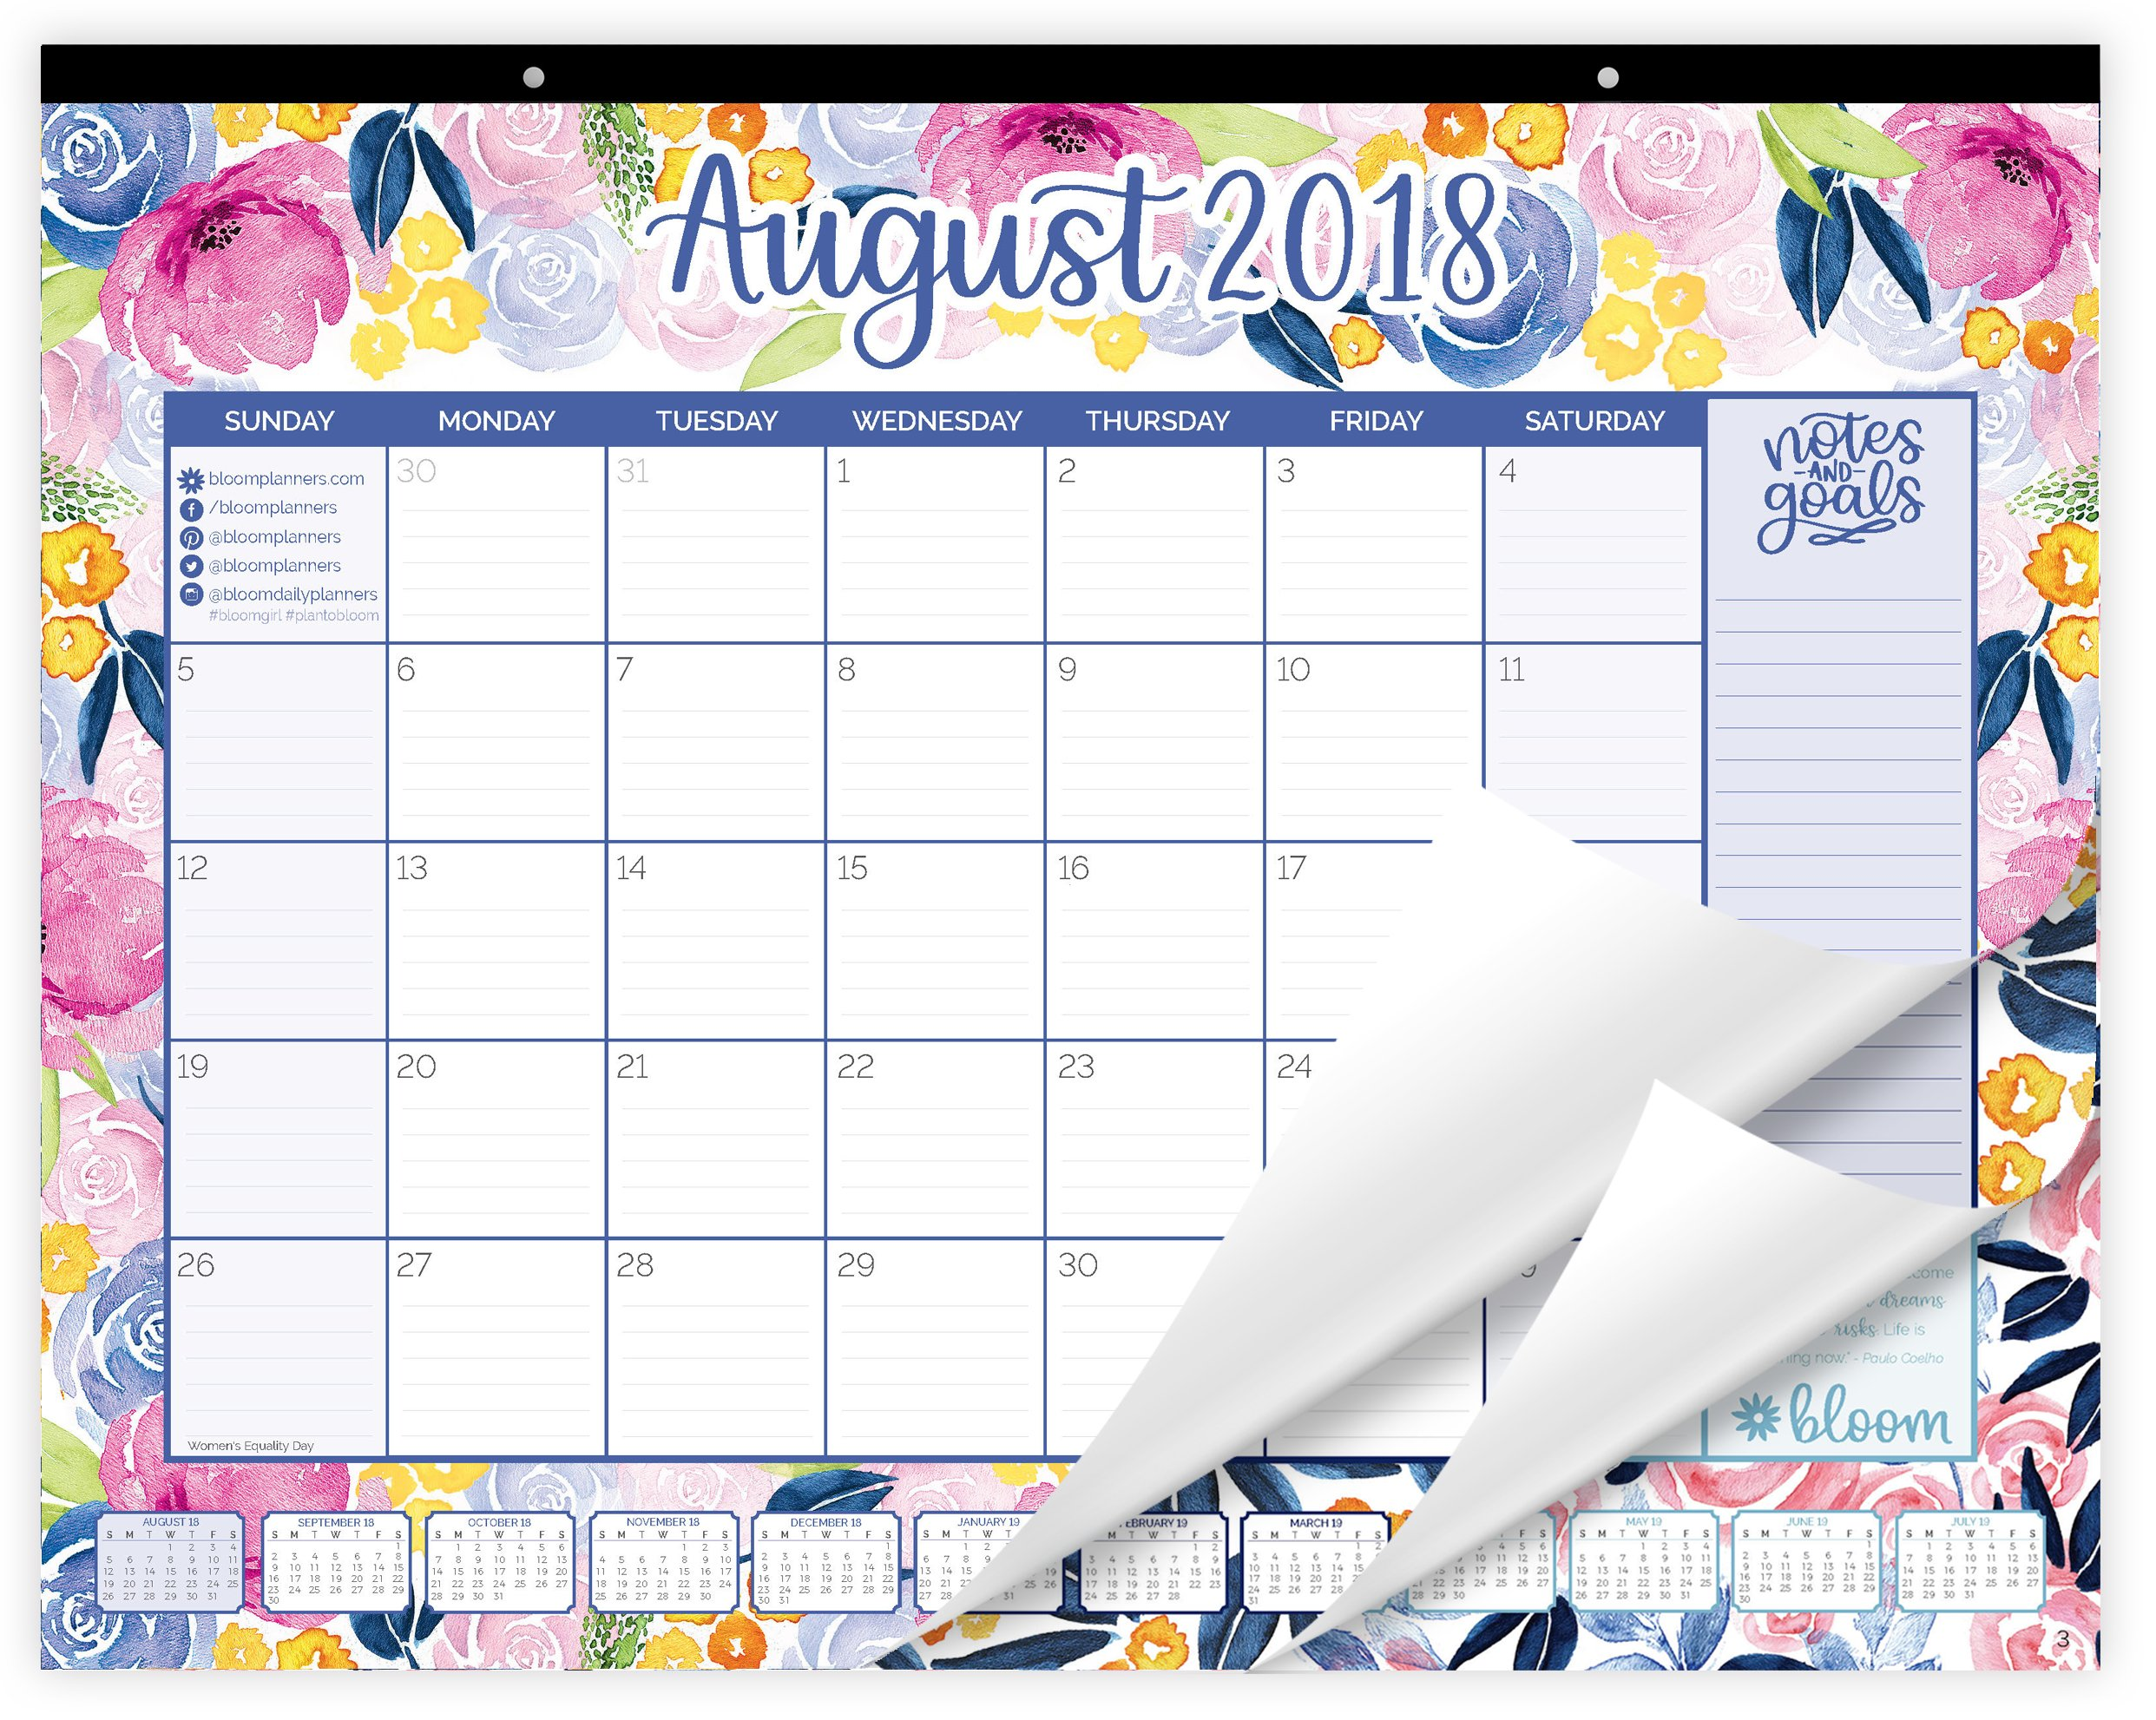 Bloom Daily Planners 2018-2019 Academic Year Desk or Wall Calendar with Vision Board (August 2018 Through July 2019) - 21'' x 16'' - Watercolor Flowers